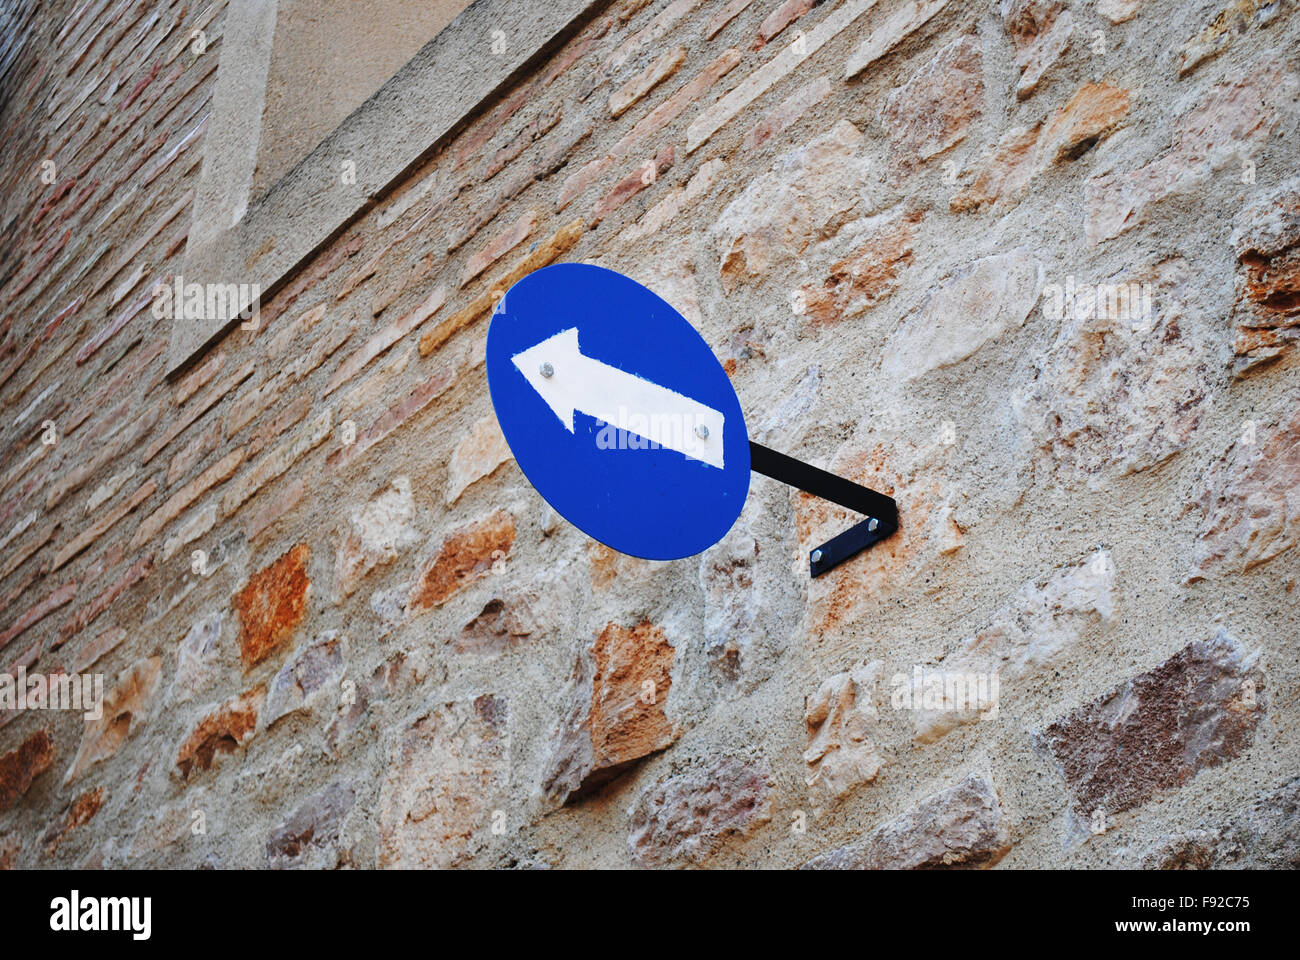 A left turn sign attached to a brick wall. - Stock Image